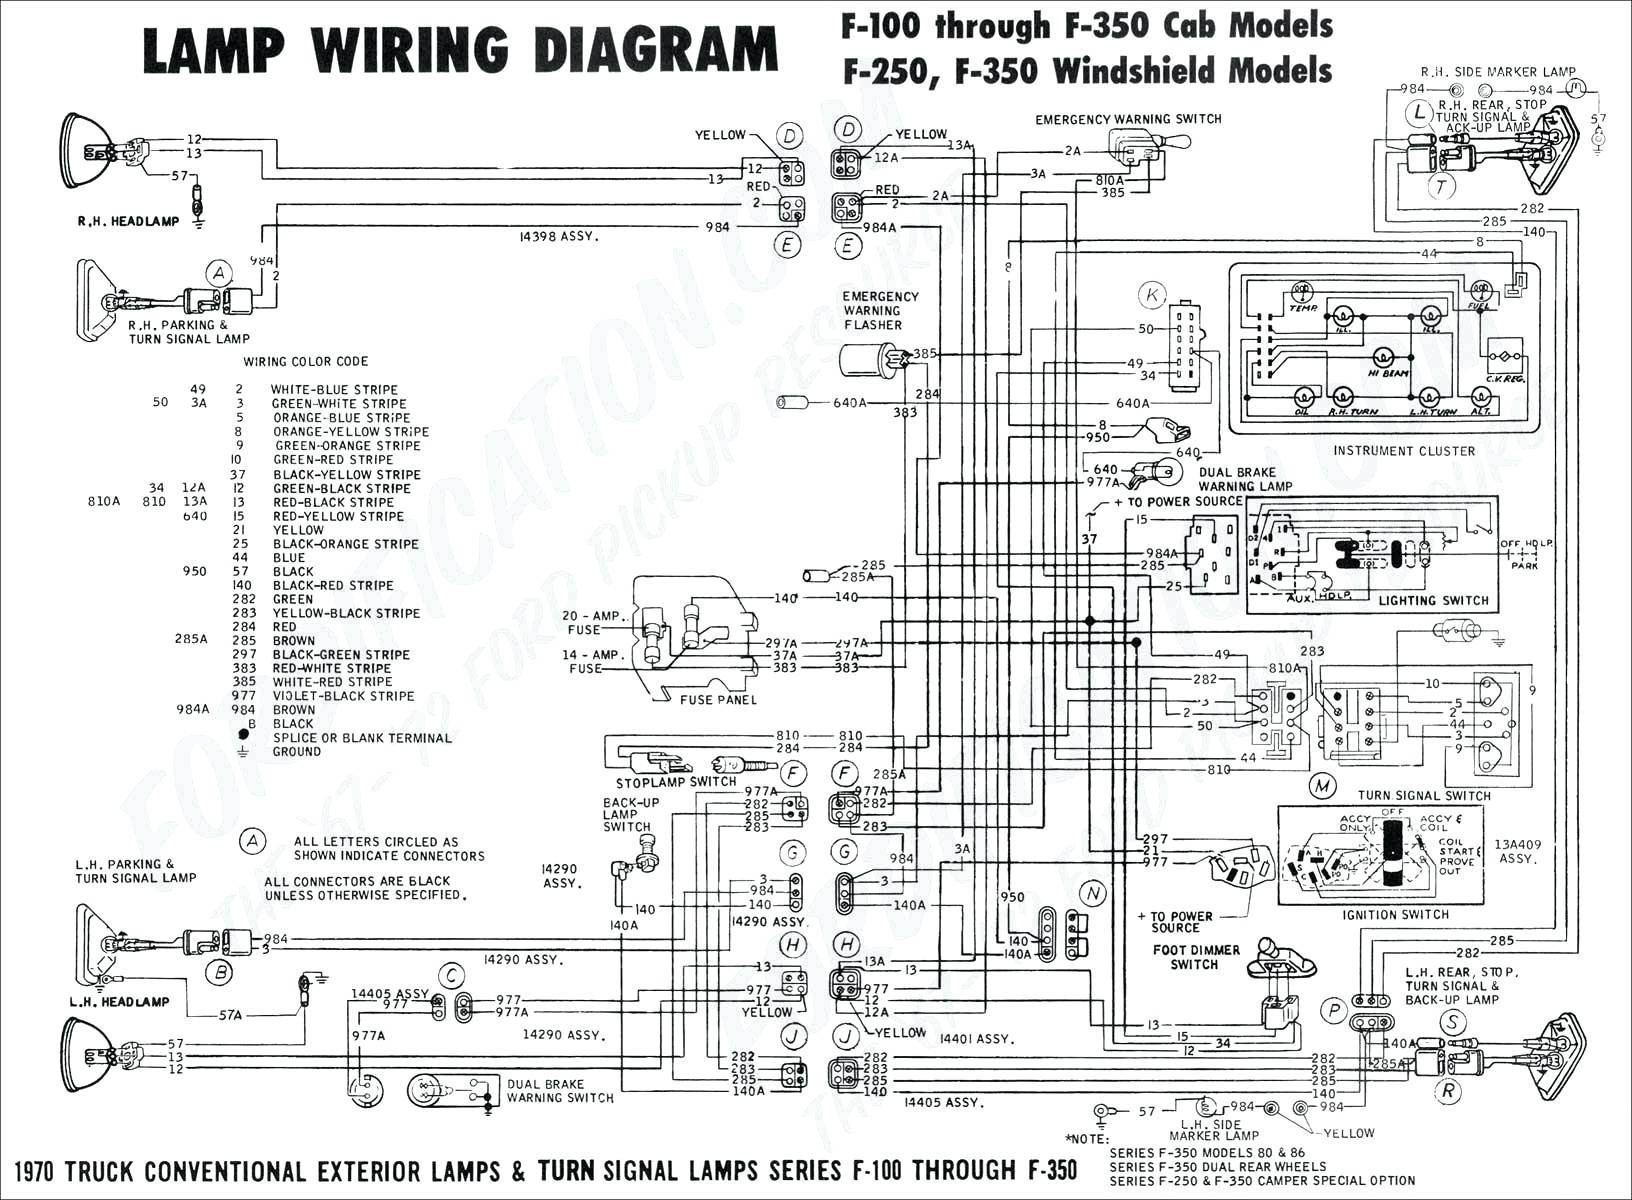 2004 Dodge Stratus Engine Diagram Up for 1999 Dodge Durango Wiring Diagram Worksheet and Wiring Of 2004 Dodge Stratus Engine Diagram